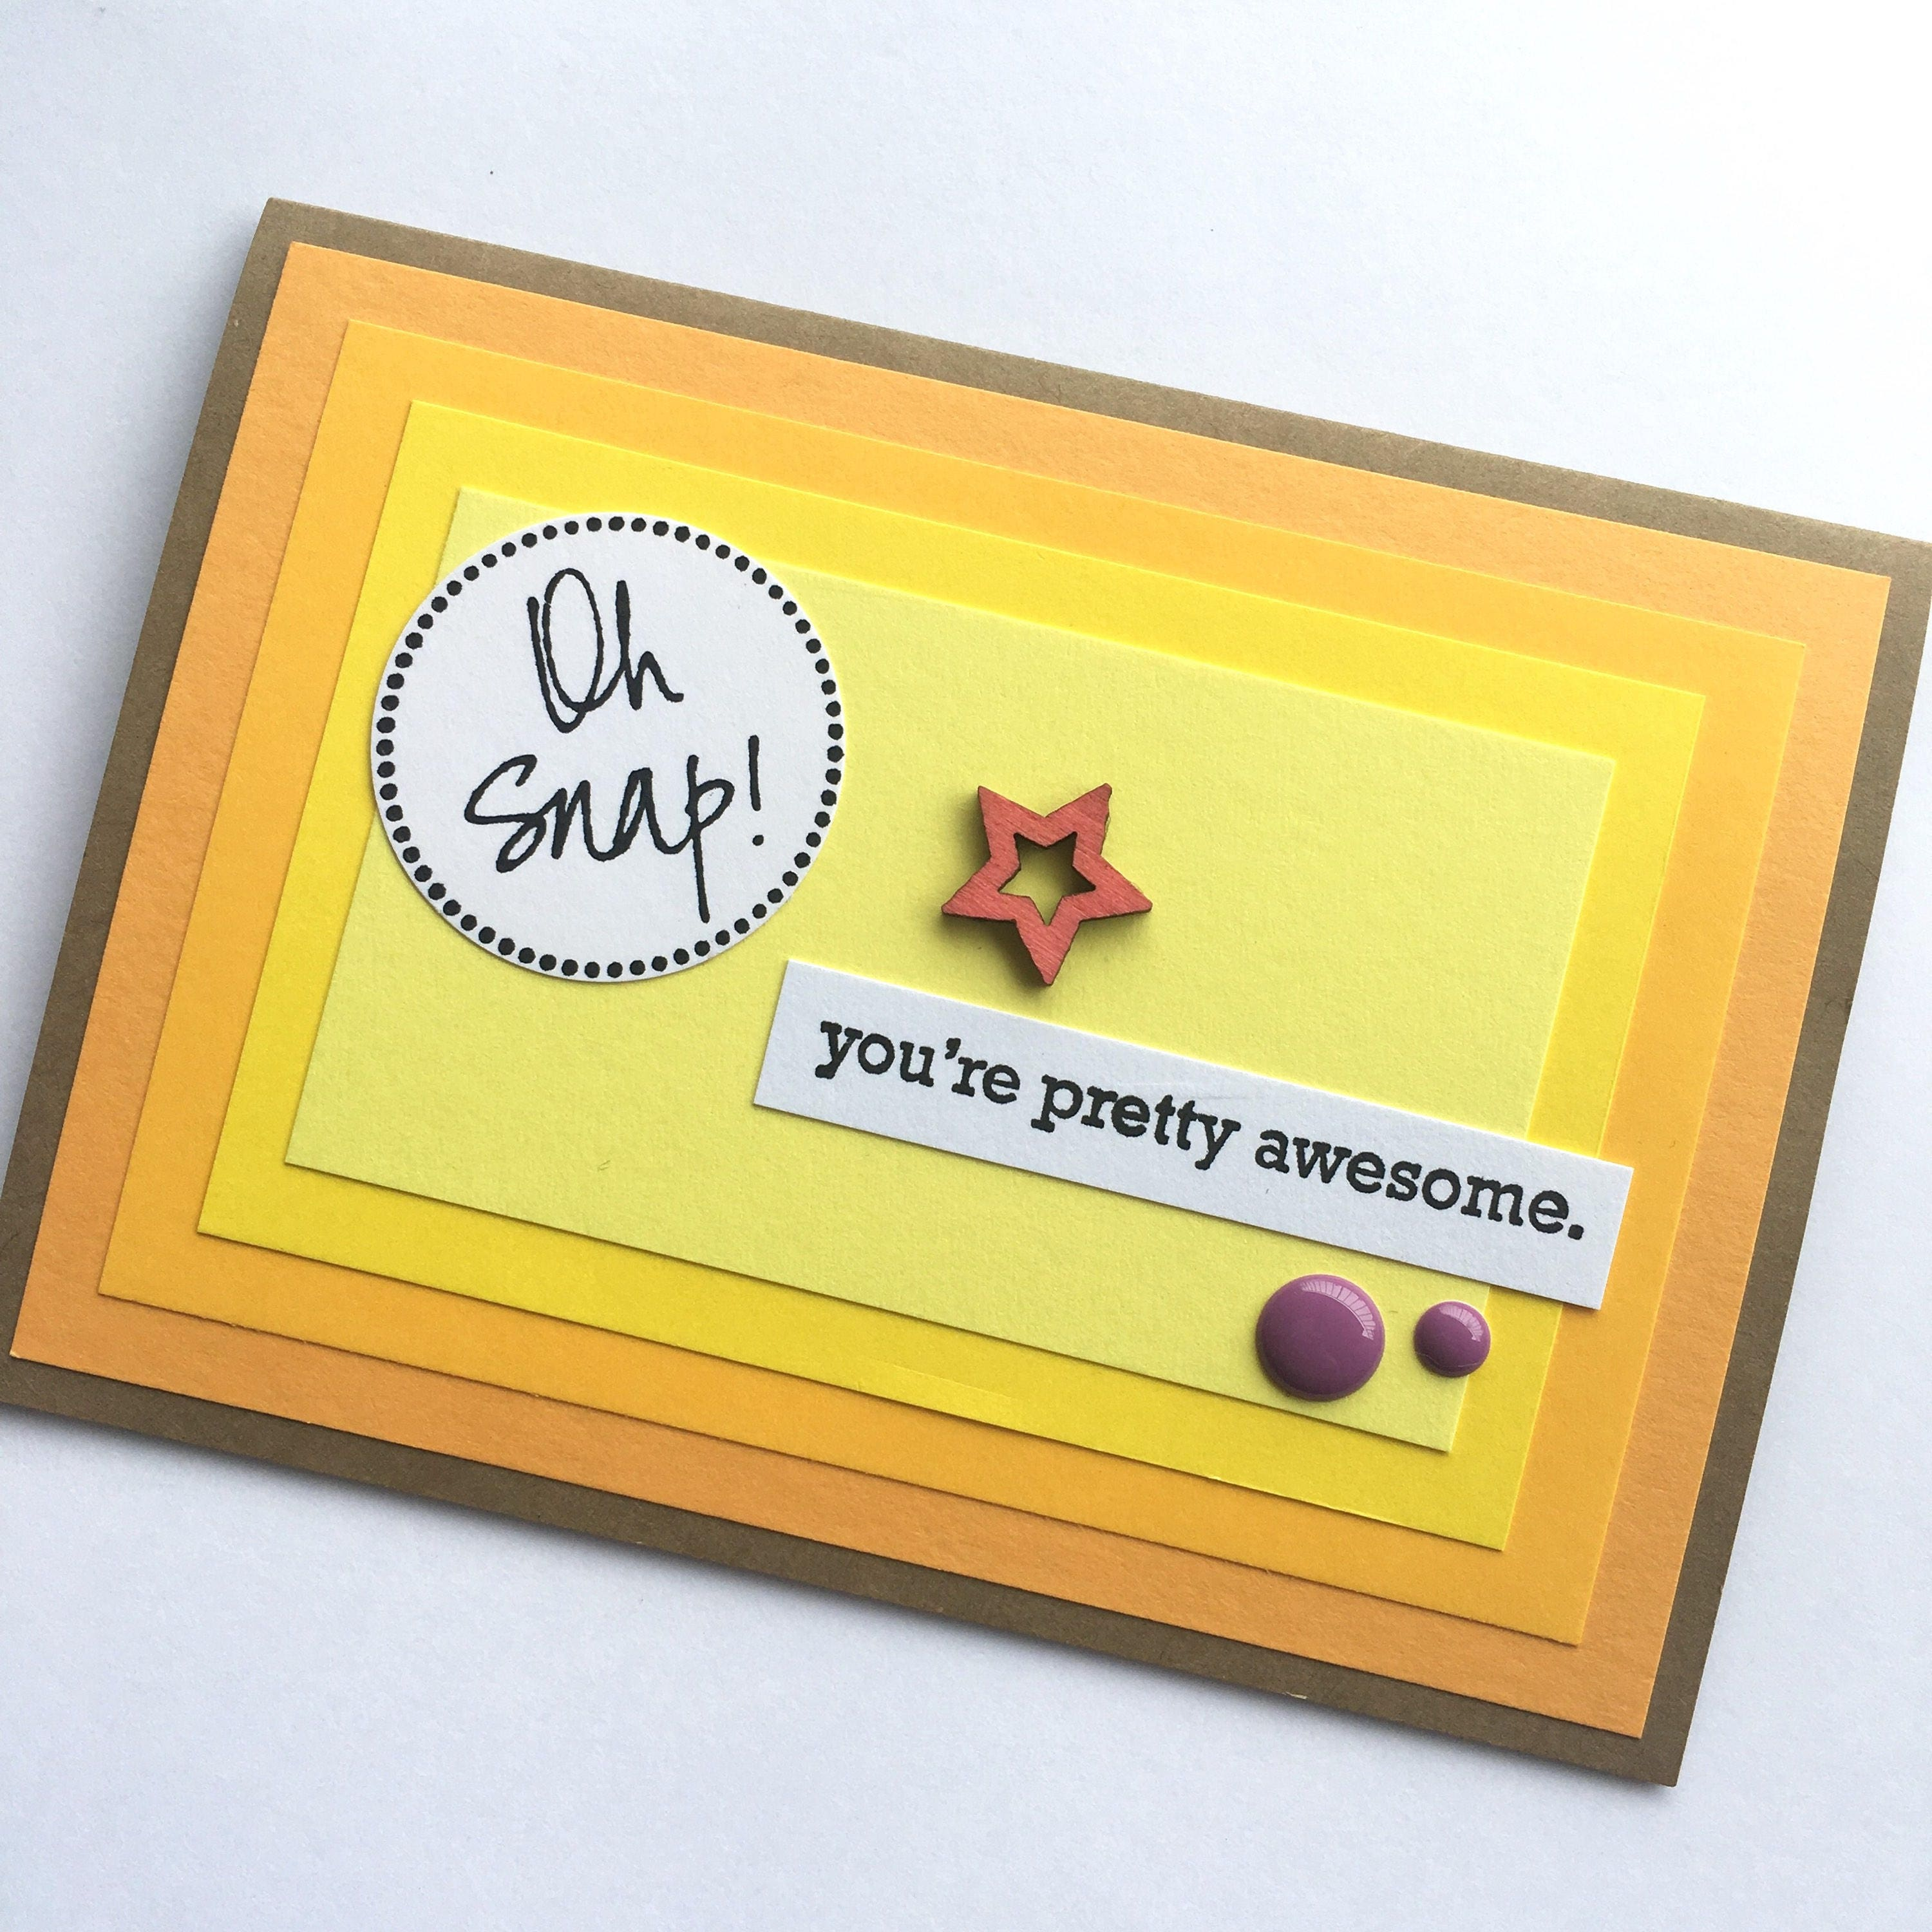 Oh Snap Youre Pretty Awesome Greeting Card Ready To Etsy